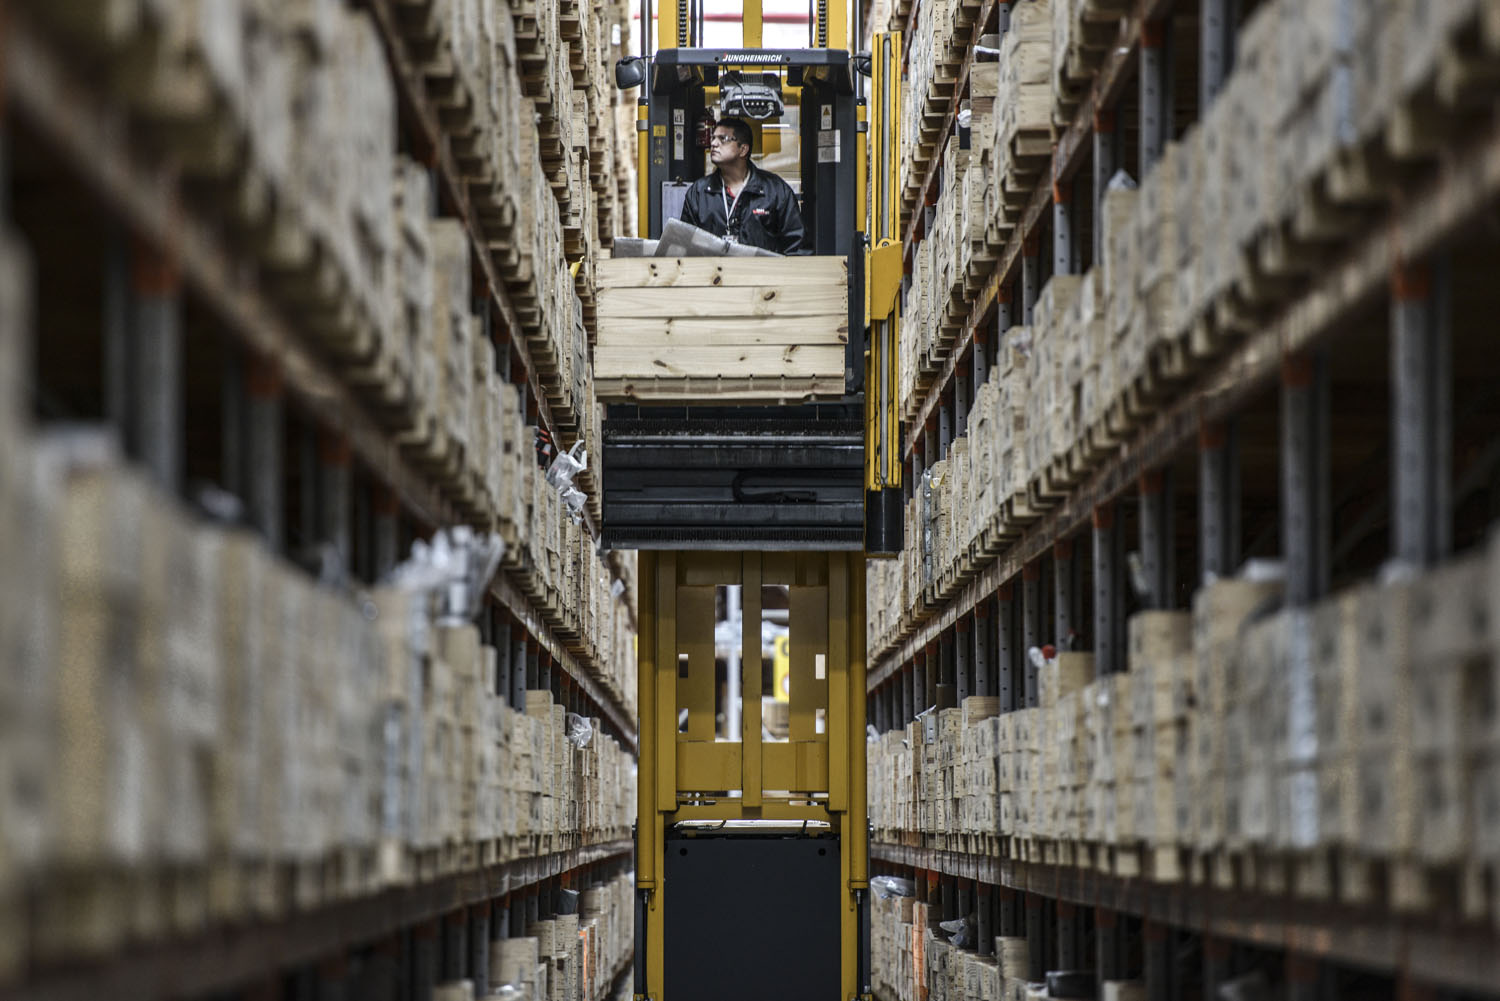 Employee looks for a part at the CASE's distribution center line, Sorocaba  Brazil.